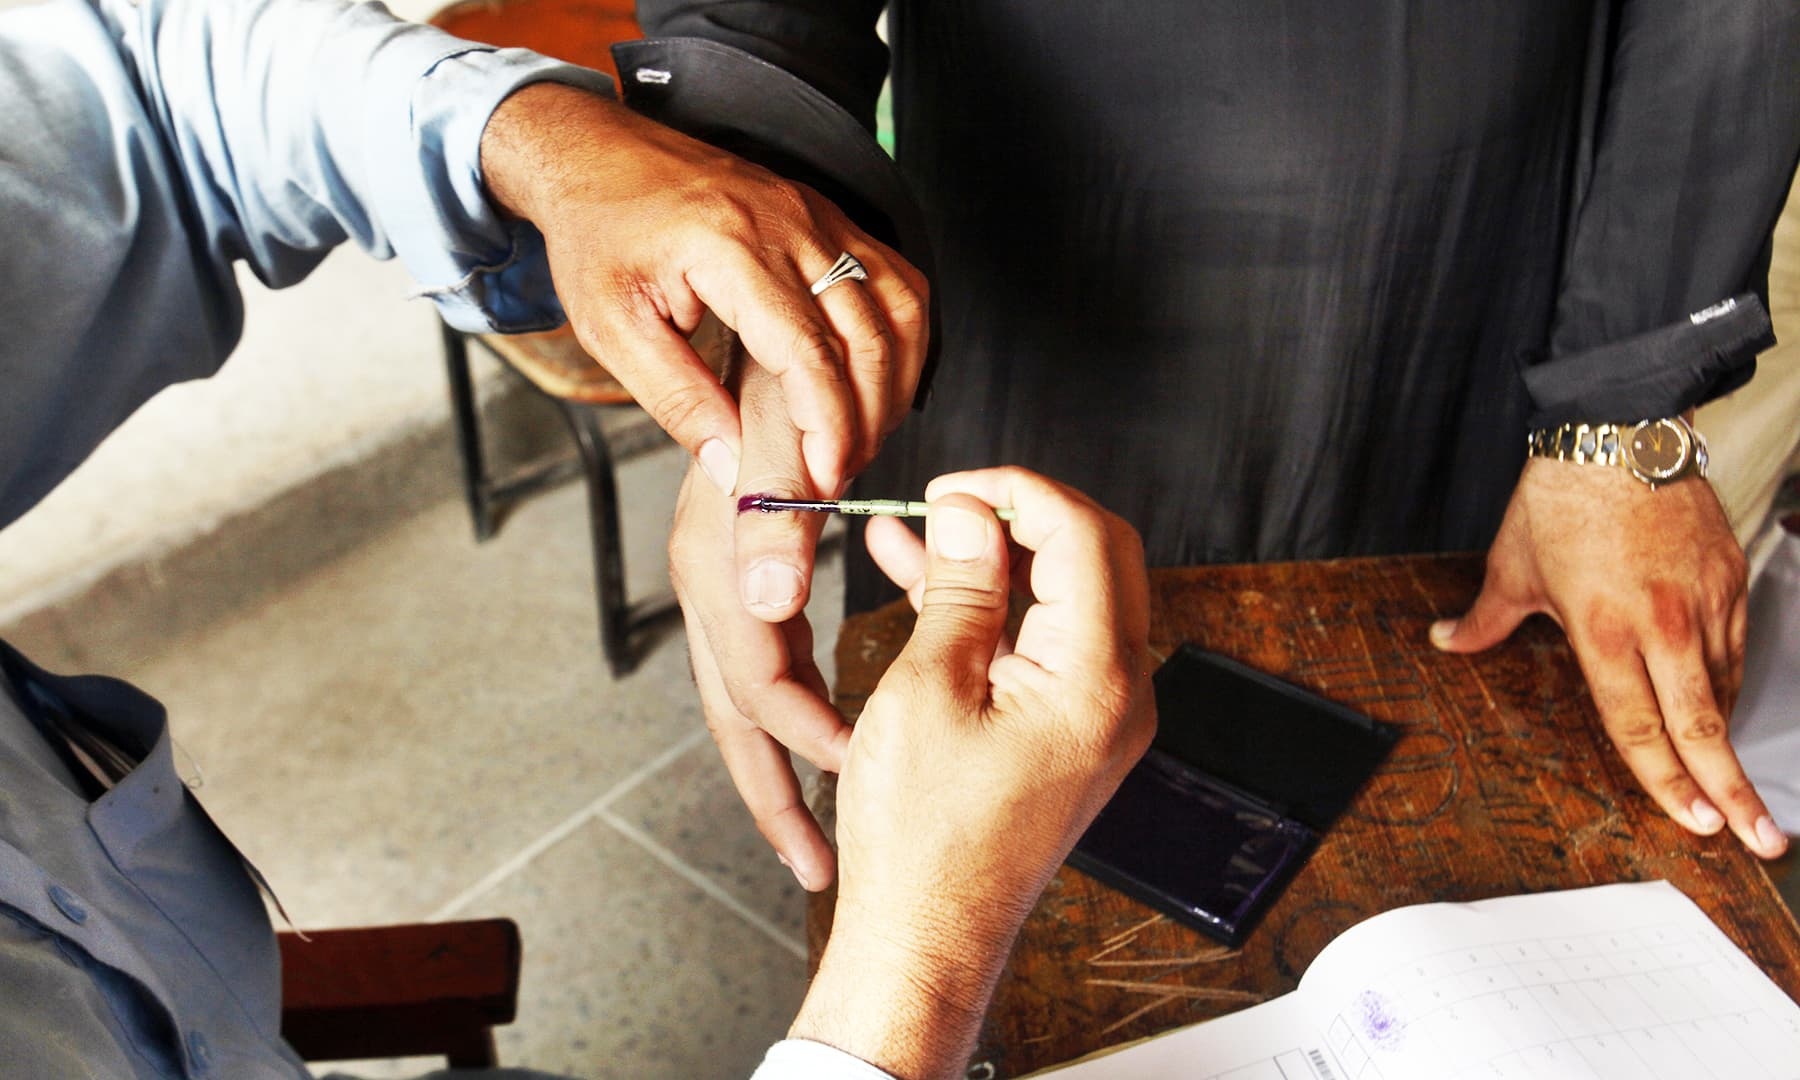 An election worker marks the thumb of voter in a polling station during an election for provincial seats in Jamrud. — AP